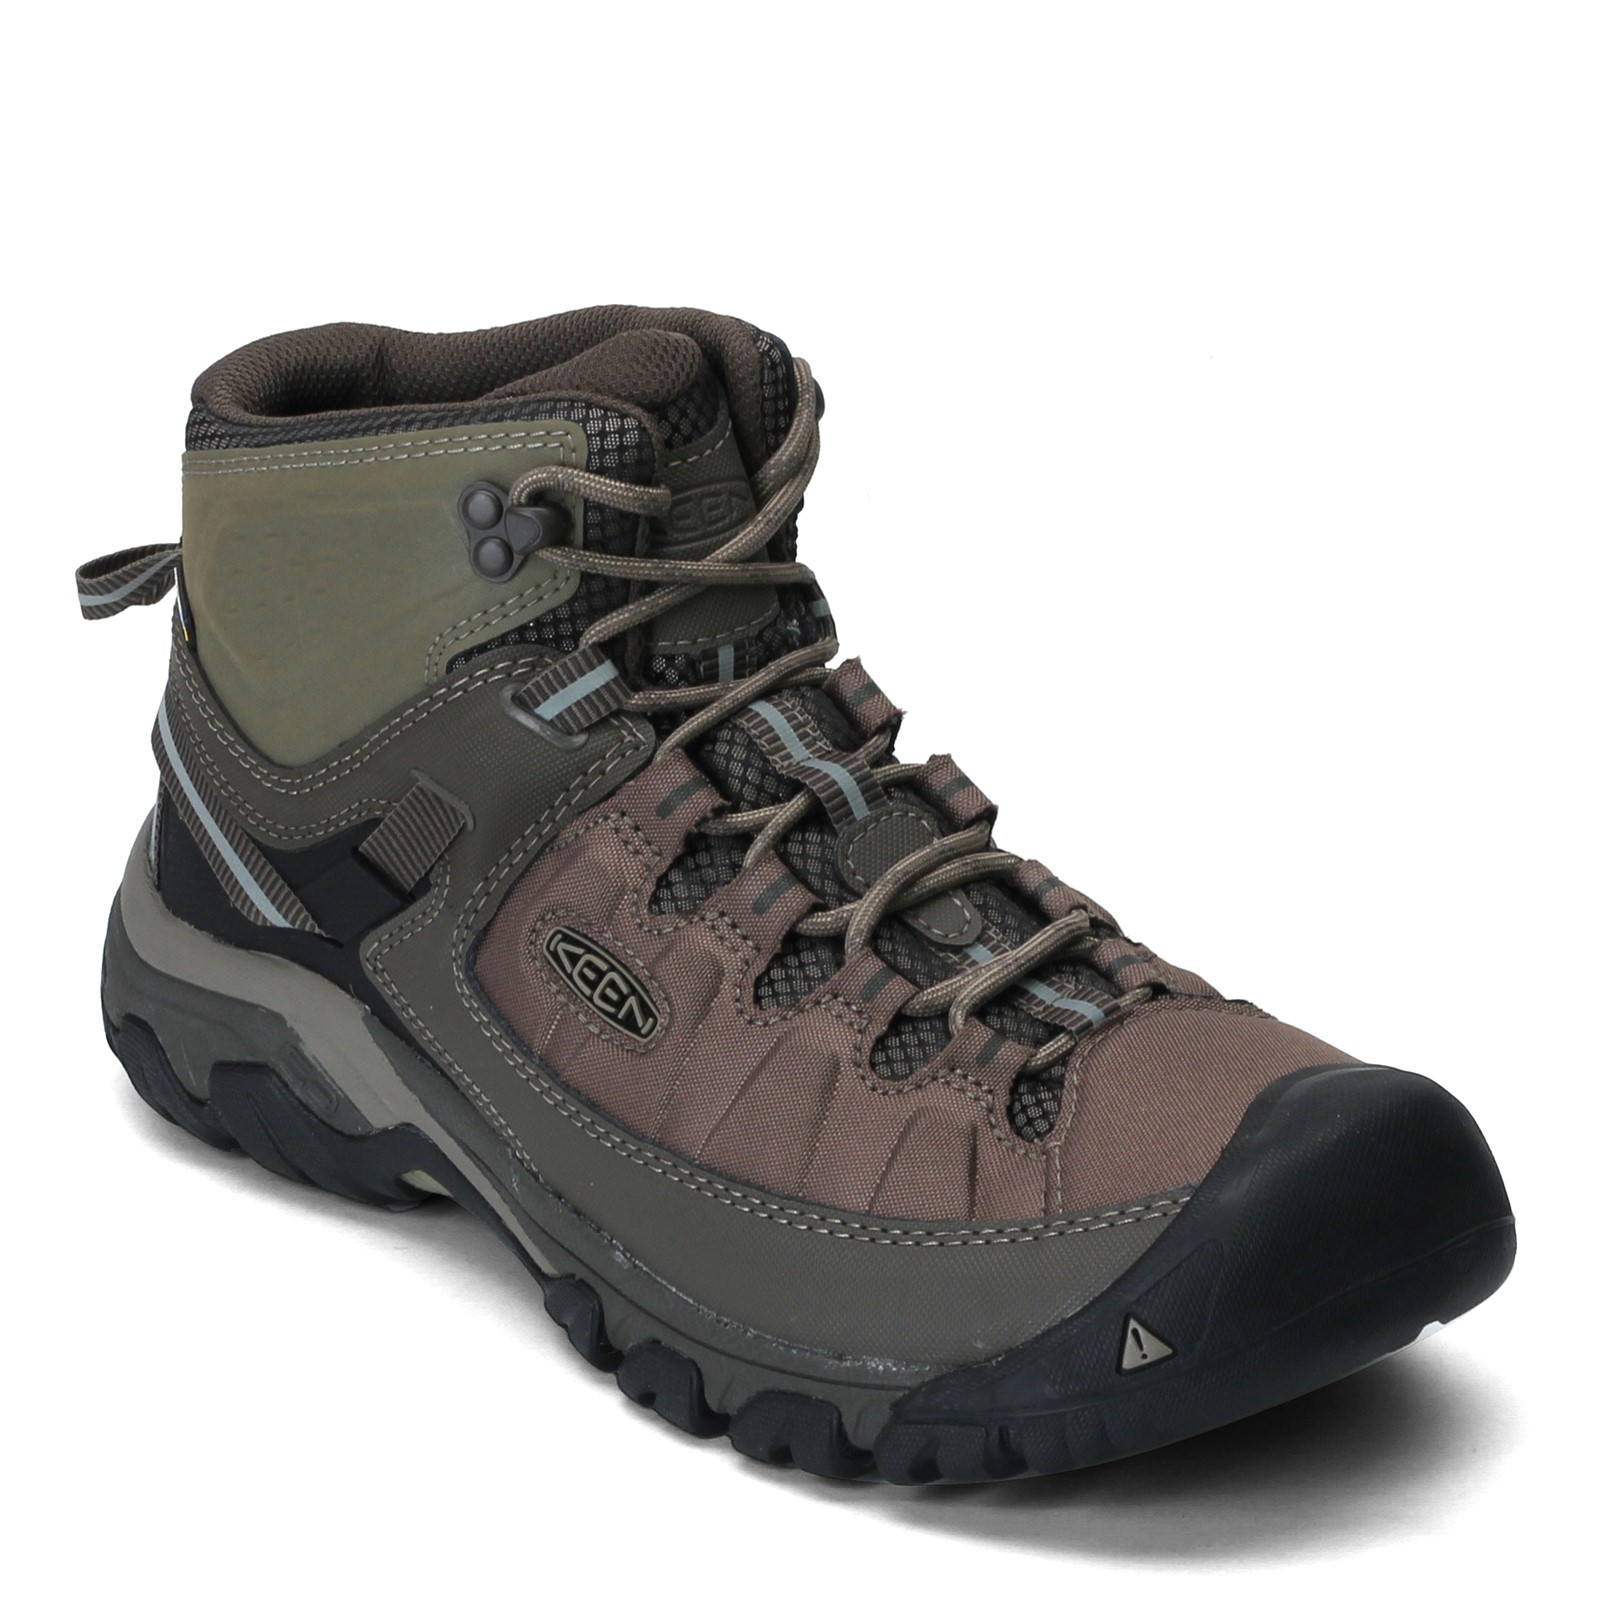 Men's Keen, Targhee Exp Mid Waterproof Hiking Boots